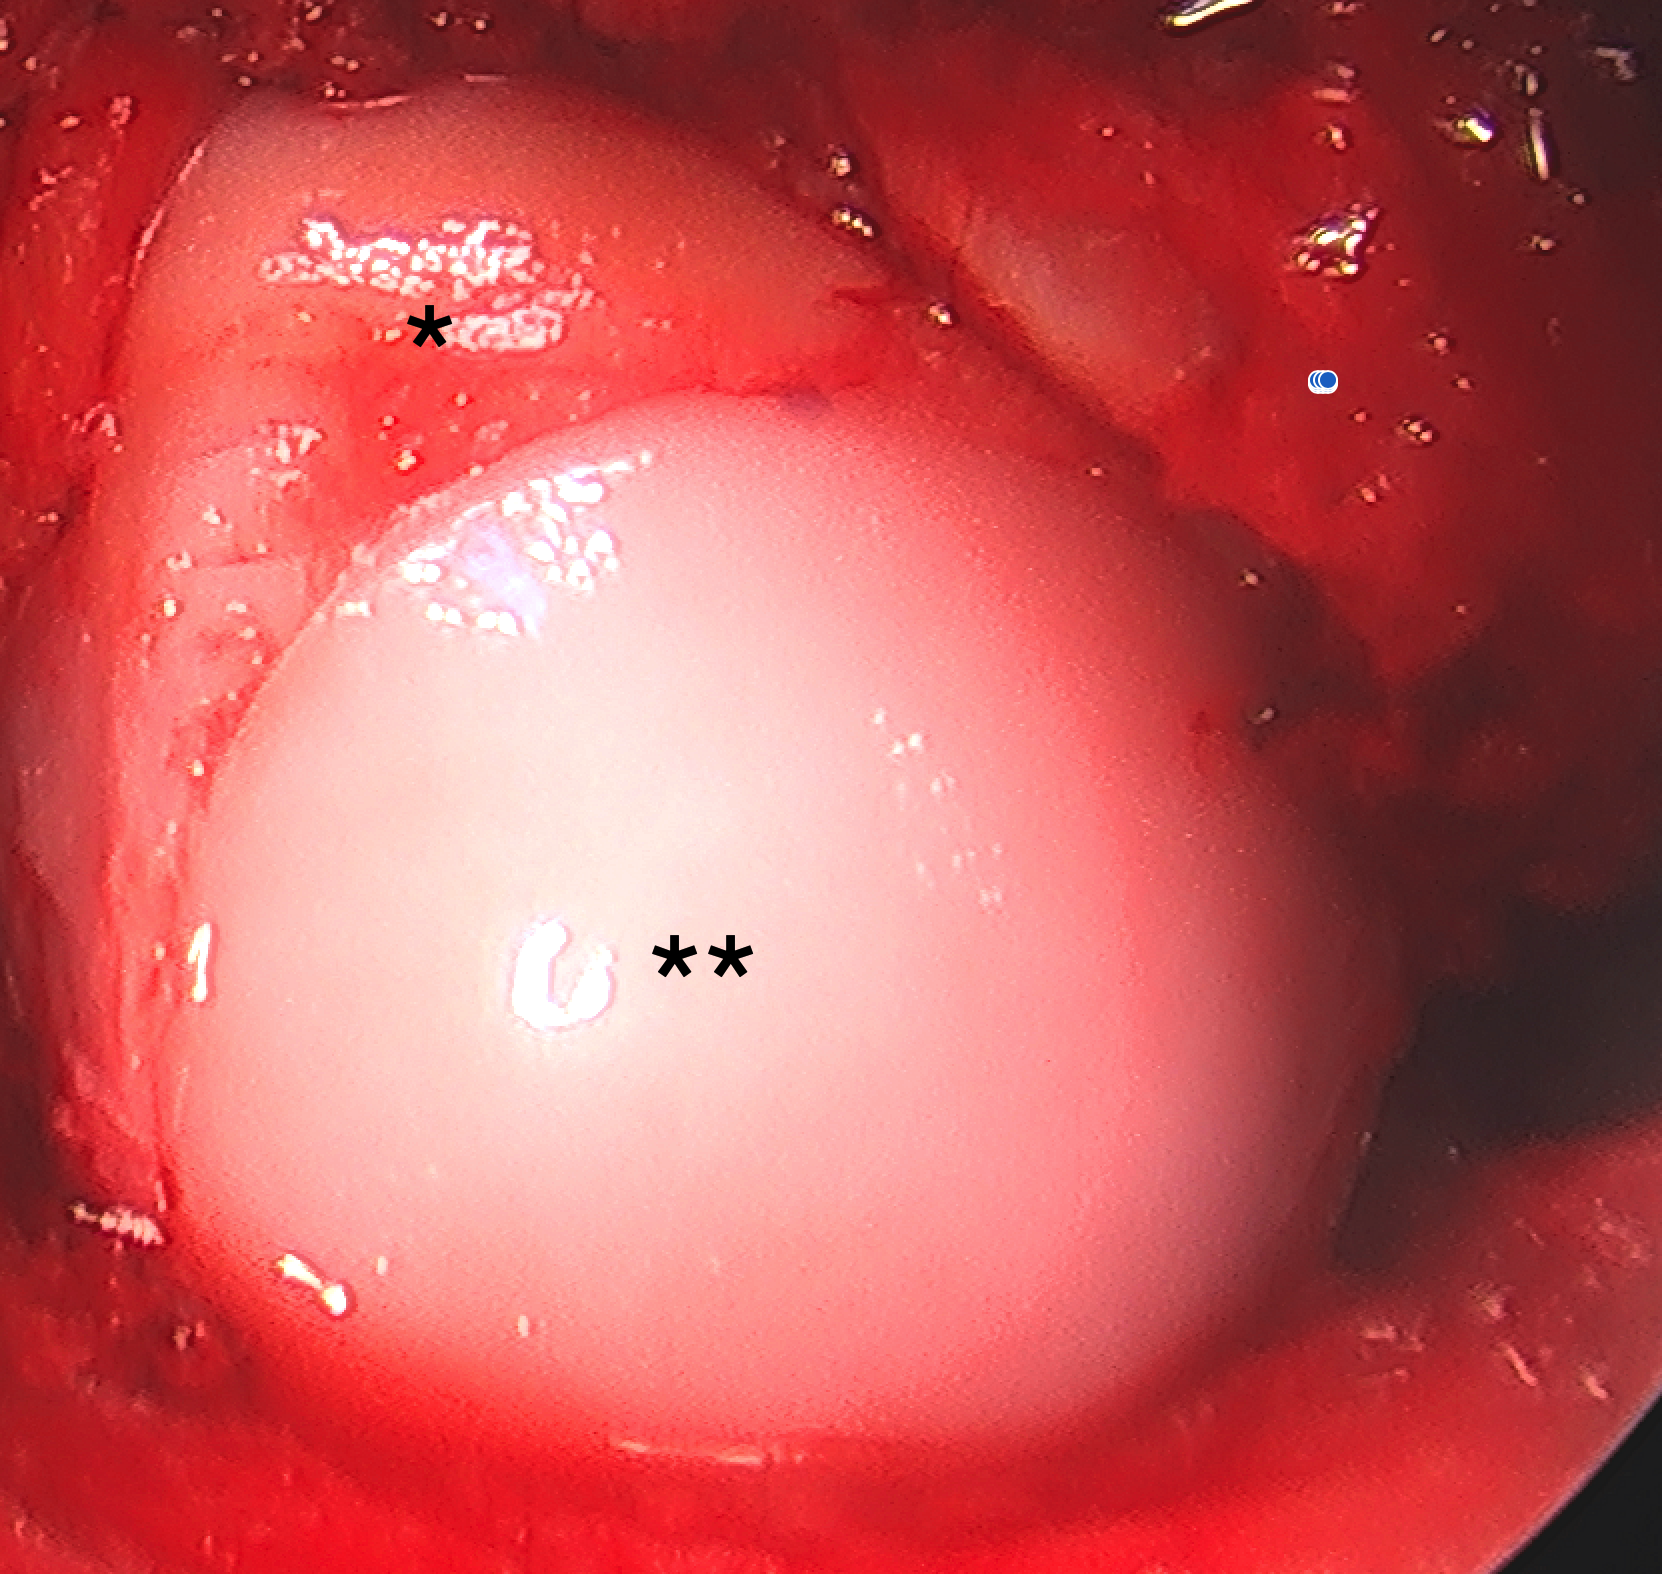 Intraoperative imaging capturing osteochondral allograft implantation (**) after measuring technical diameter and depth following guide facilitated intraoperative measurements.  The native lateral femoral condyle (LFC) cartilage is denoted (*).